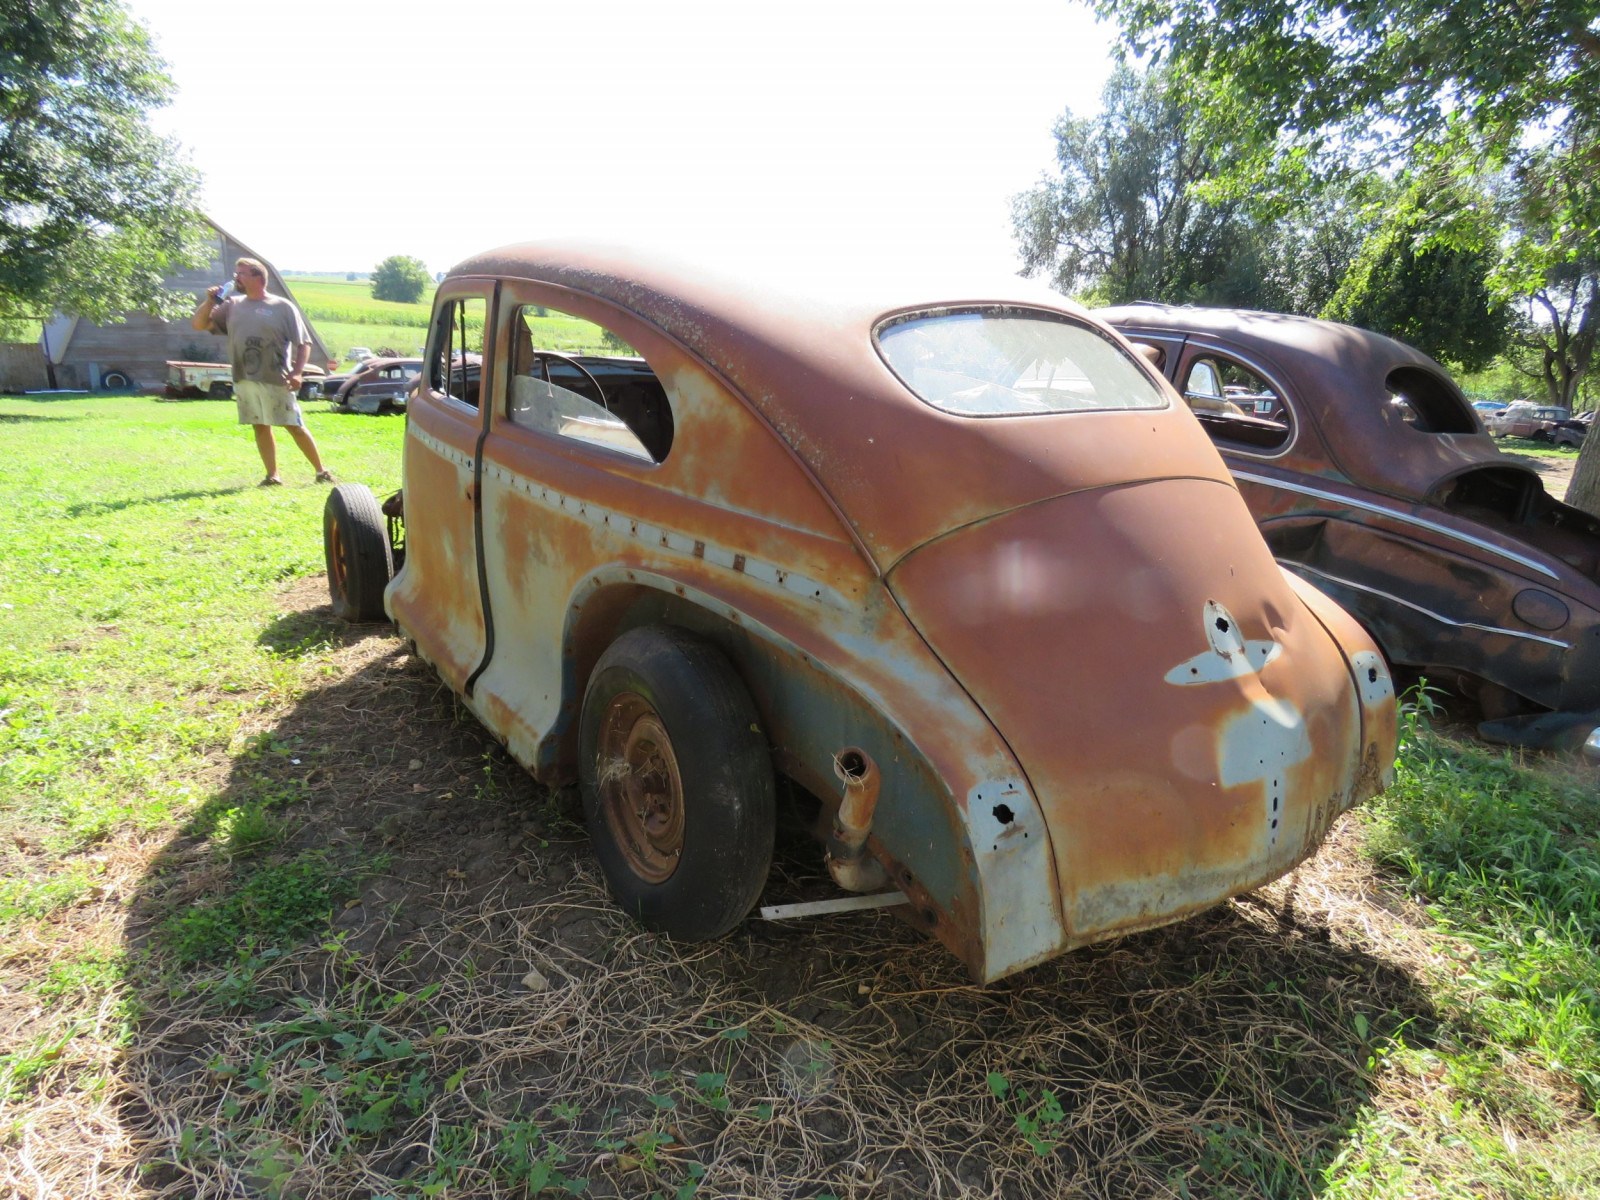 1940's Chevrolet 2dr Sedan for project or parts - Image 3